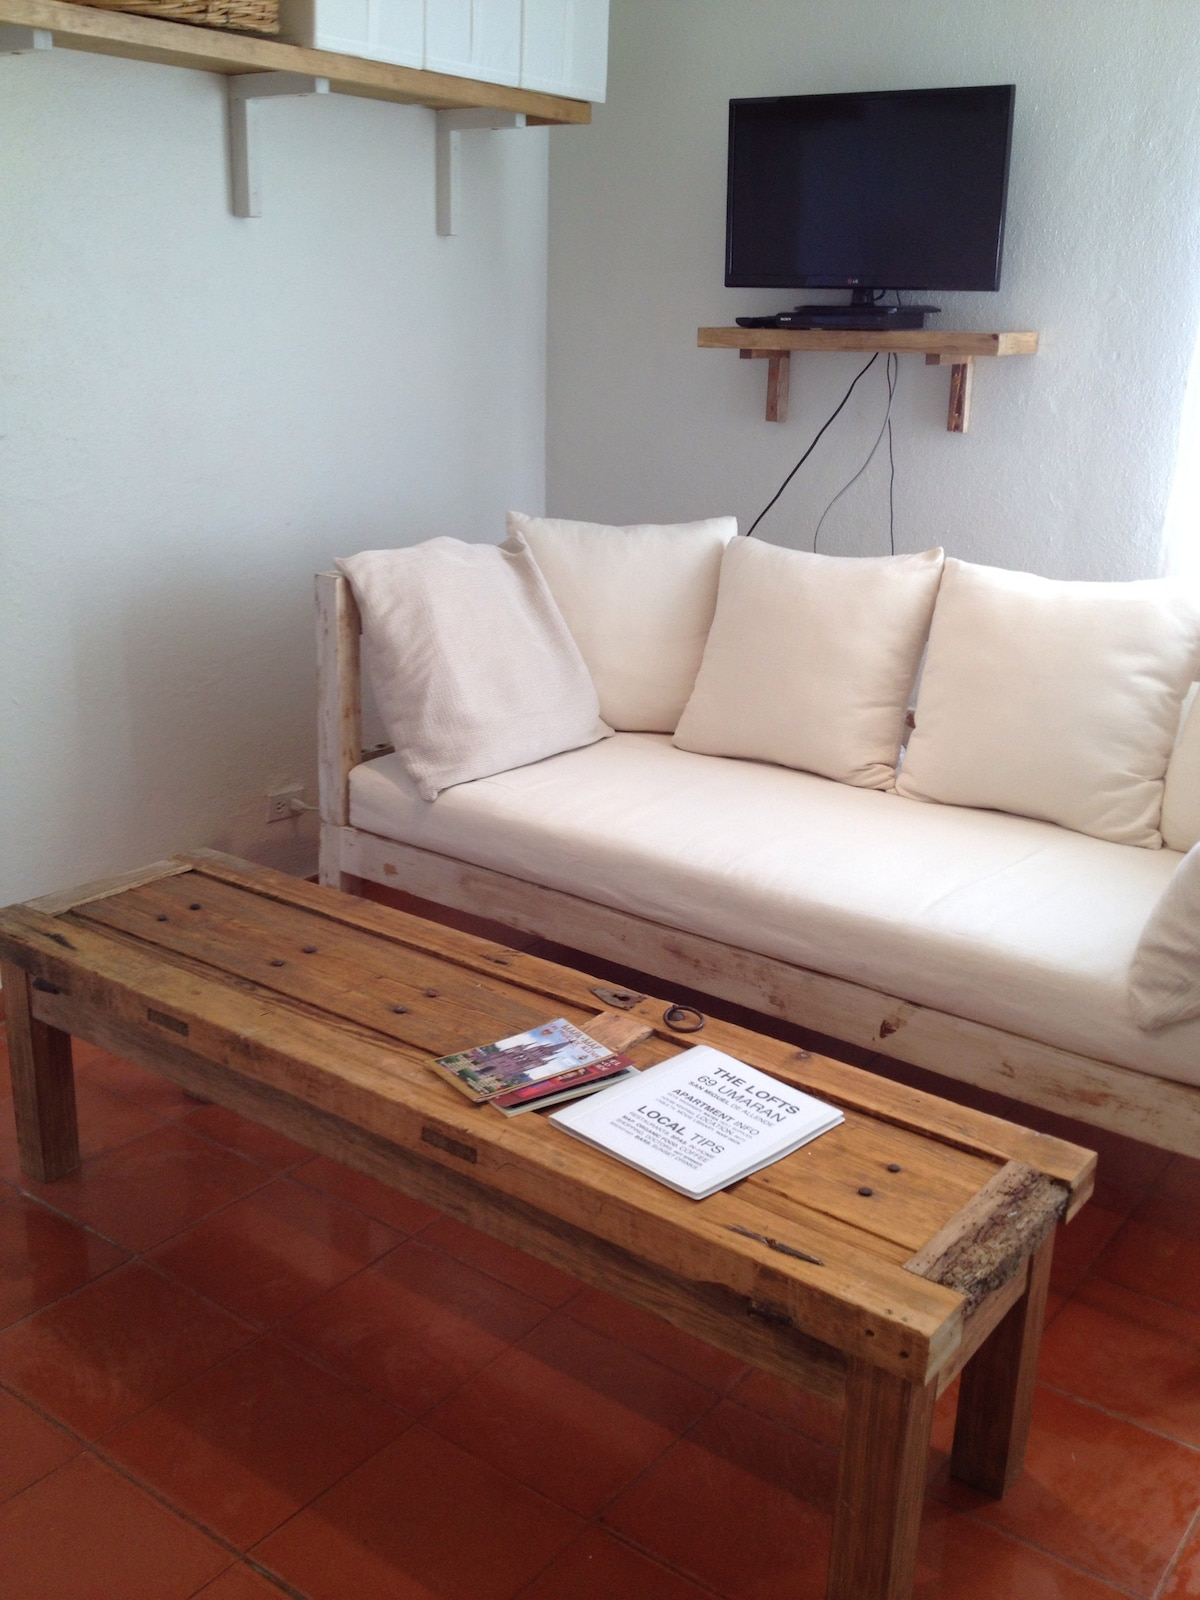 NEW CUSTOM WHITEWASHED SOFA AND COLONIAL DOOR COFFEE TABLE